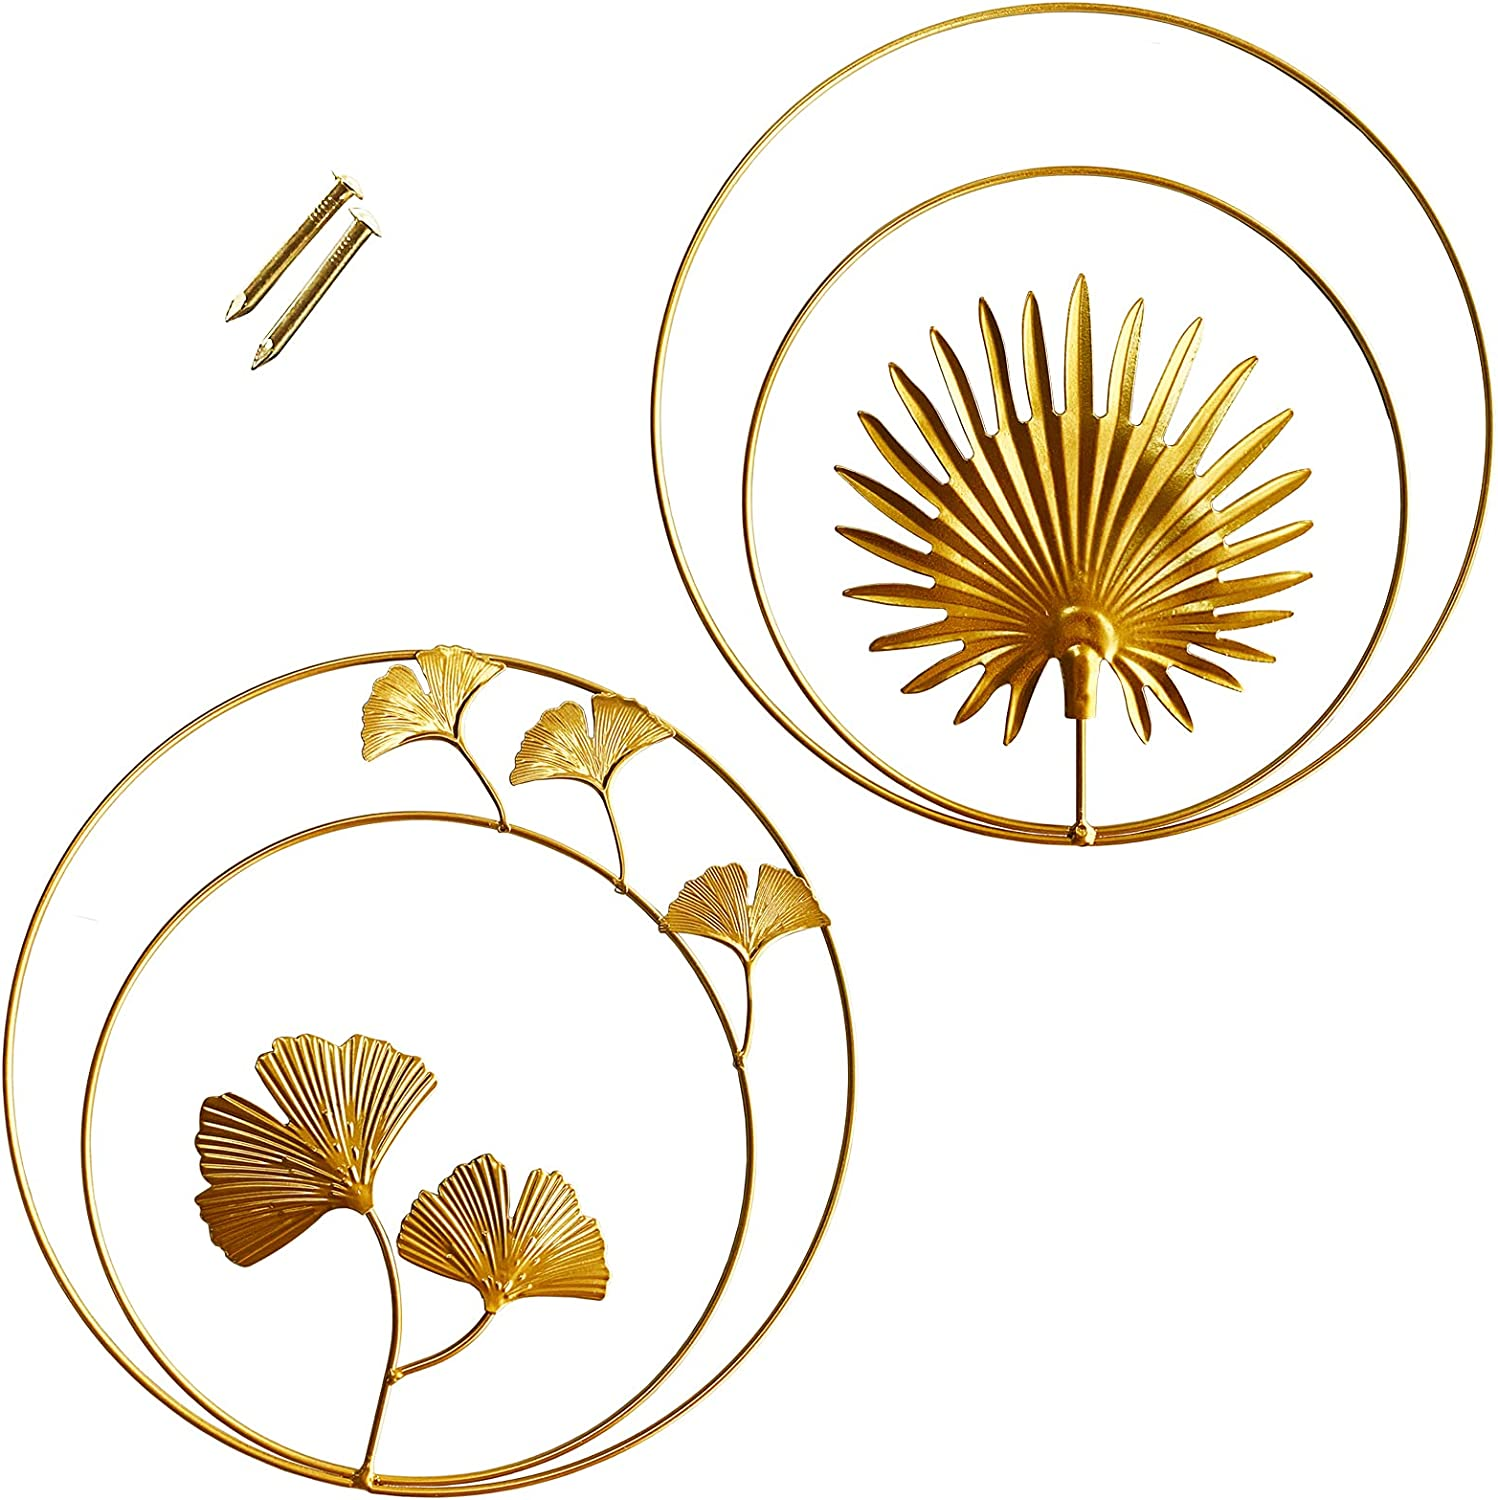 2PCS Wall Sculptures 11 Inch Metal Leaf Wall Decor Gingko Palm Leaf Hanging Wall Art Round Gold decor Easy Installation for Home,Bedroom,Living Room,Office,Hotel Decoration,Gold